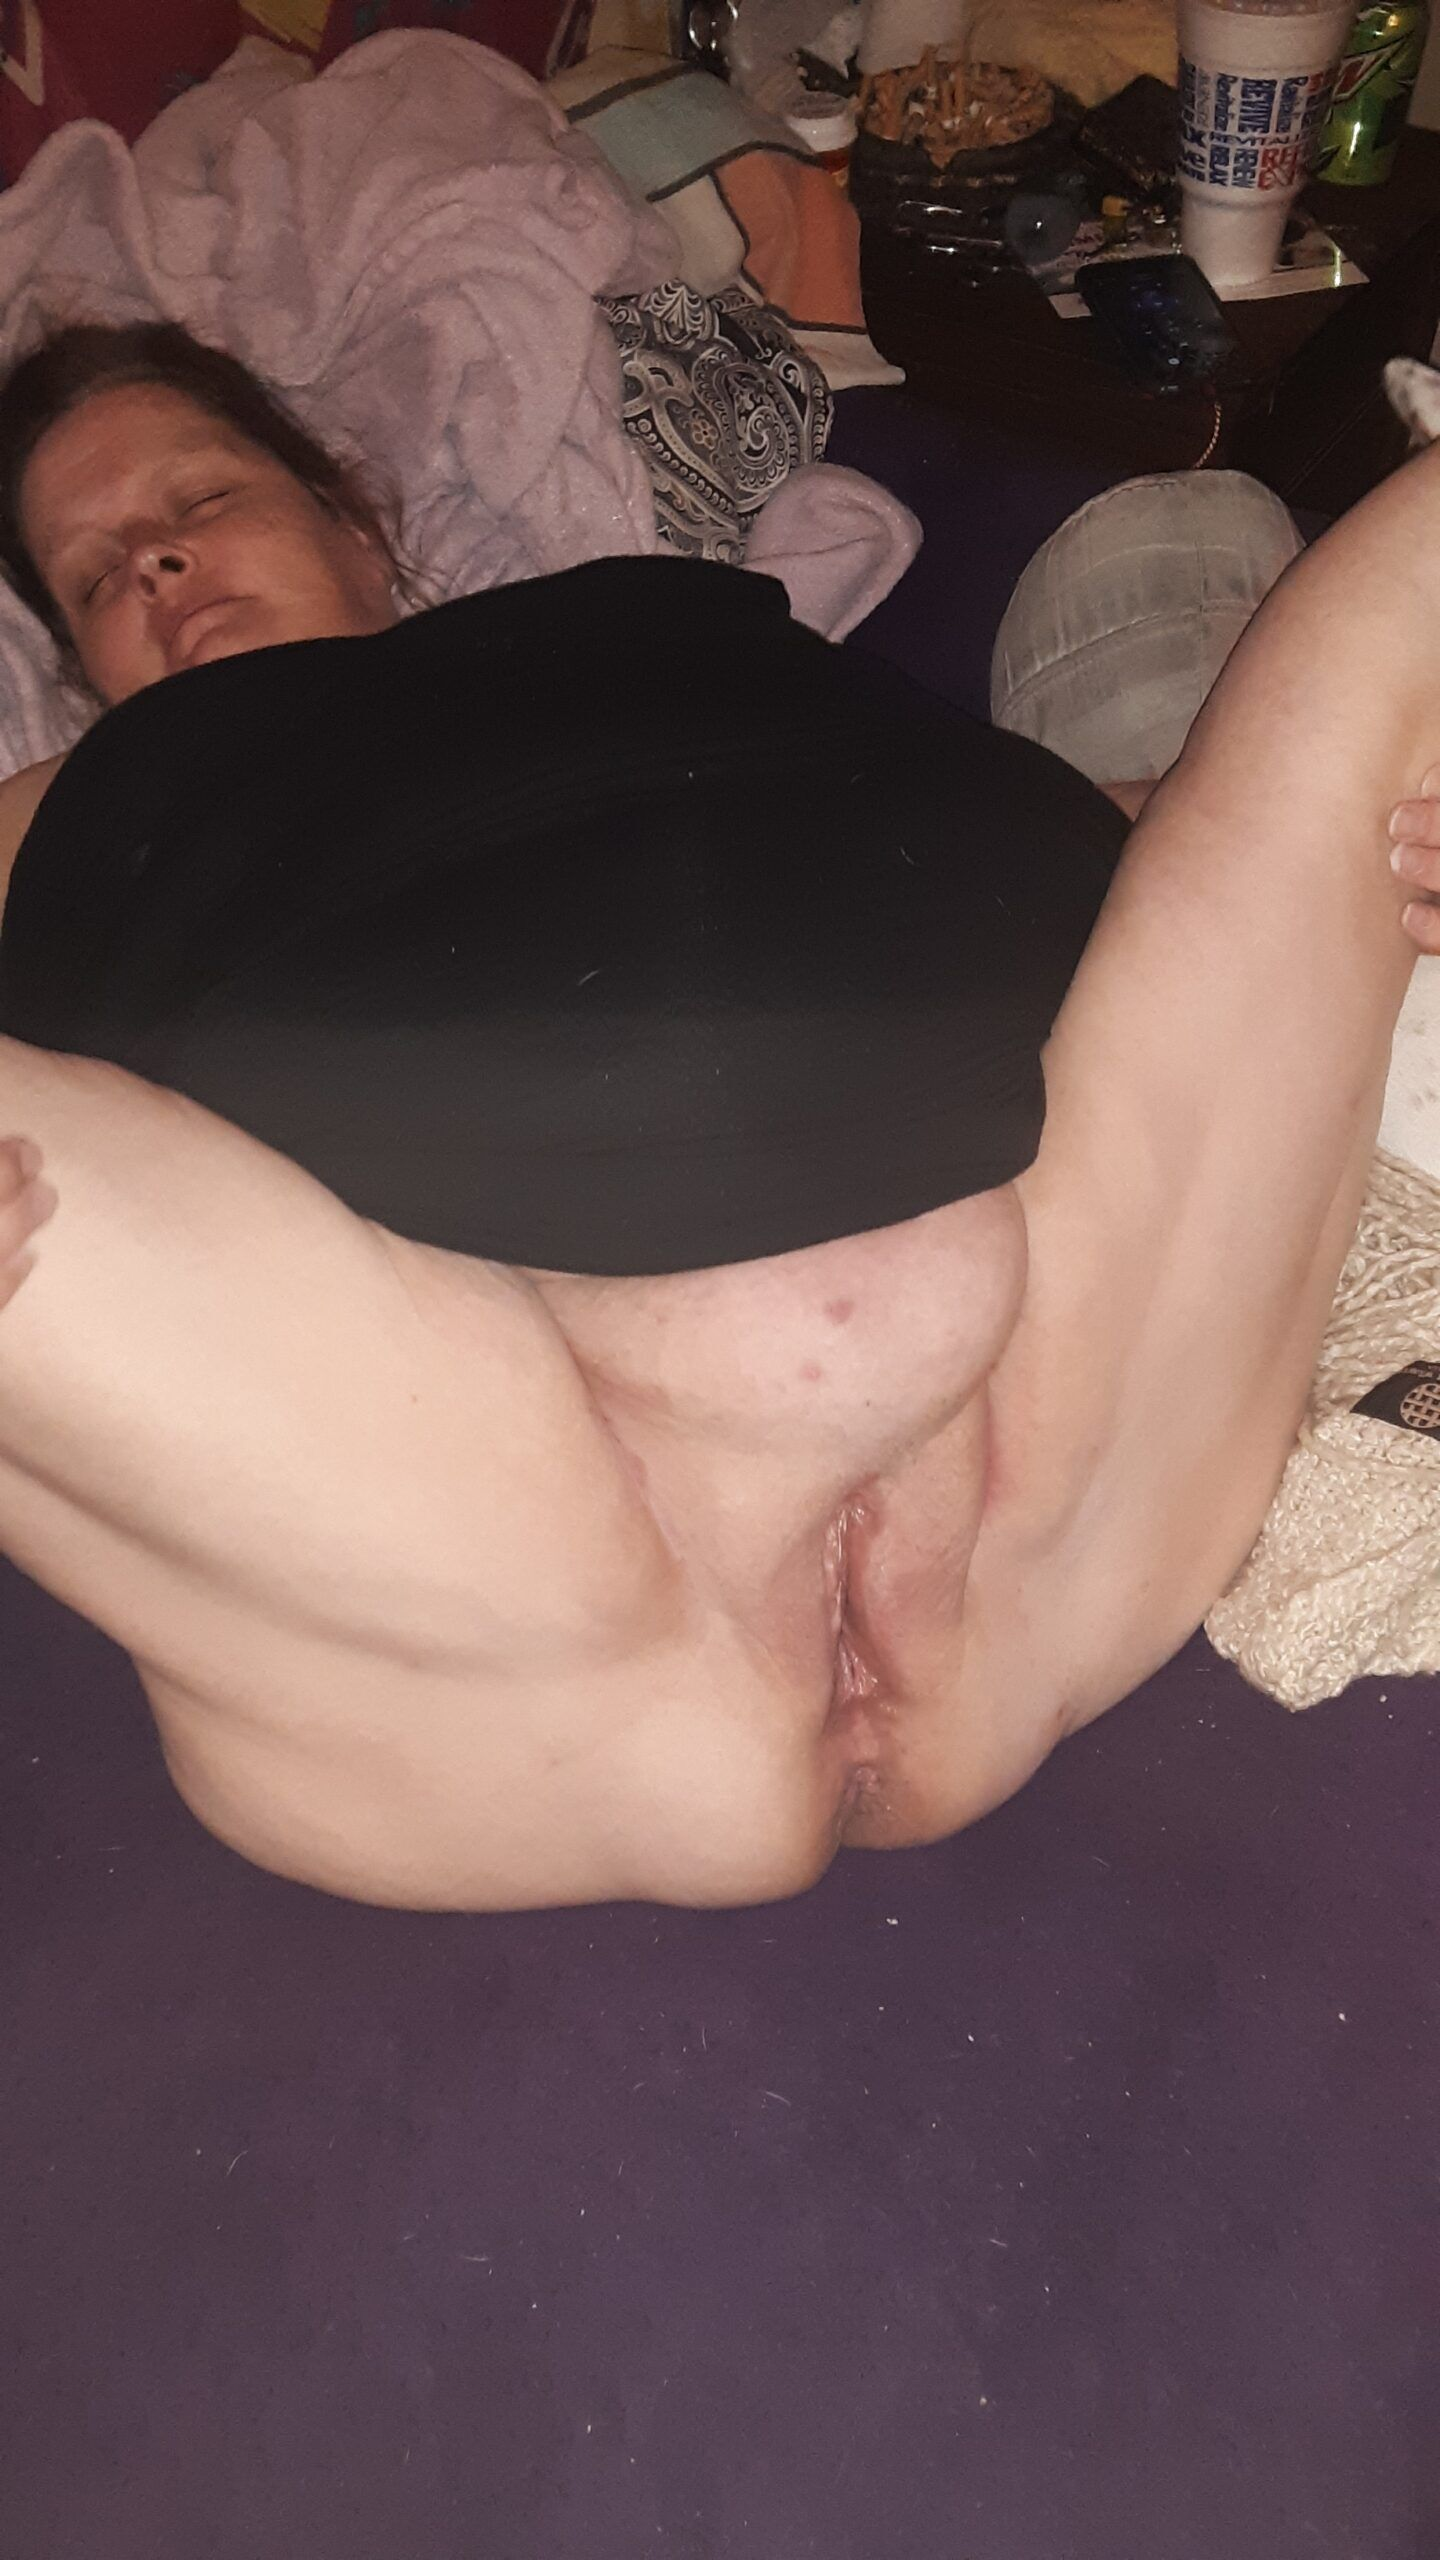 Fat wife Showing her pussy to everyone real nudity pussy flash mature